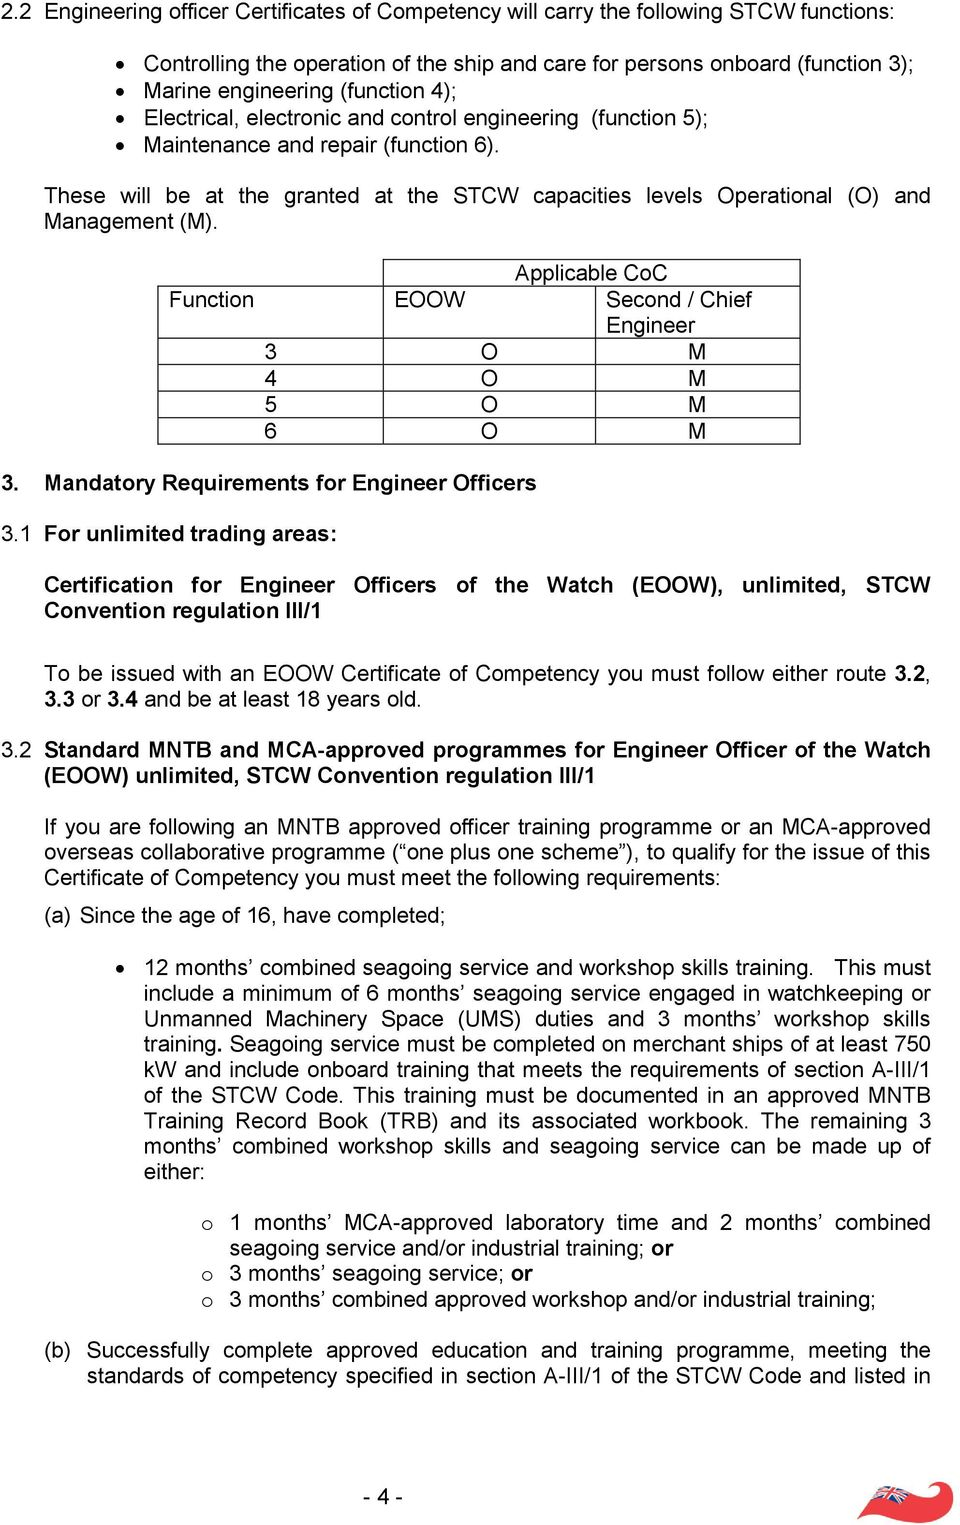 These will be at the granted at the STCW capacities levels Operational (O) and Management (M). Applicable CoC Function EOOW Second / Chief Engineer 3 O M 4 O M 5 O M 6 O M 3.